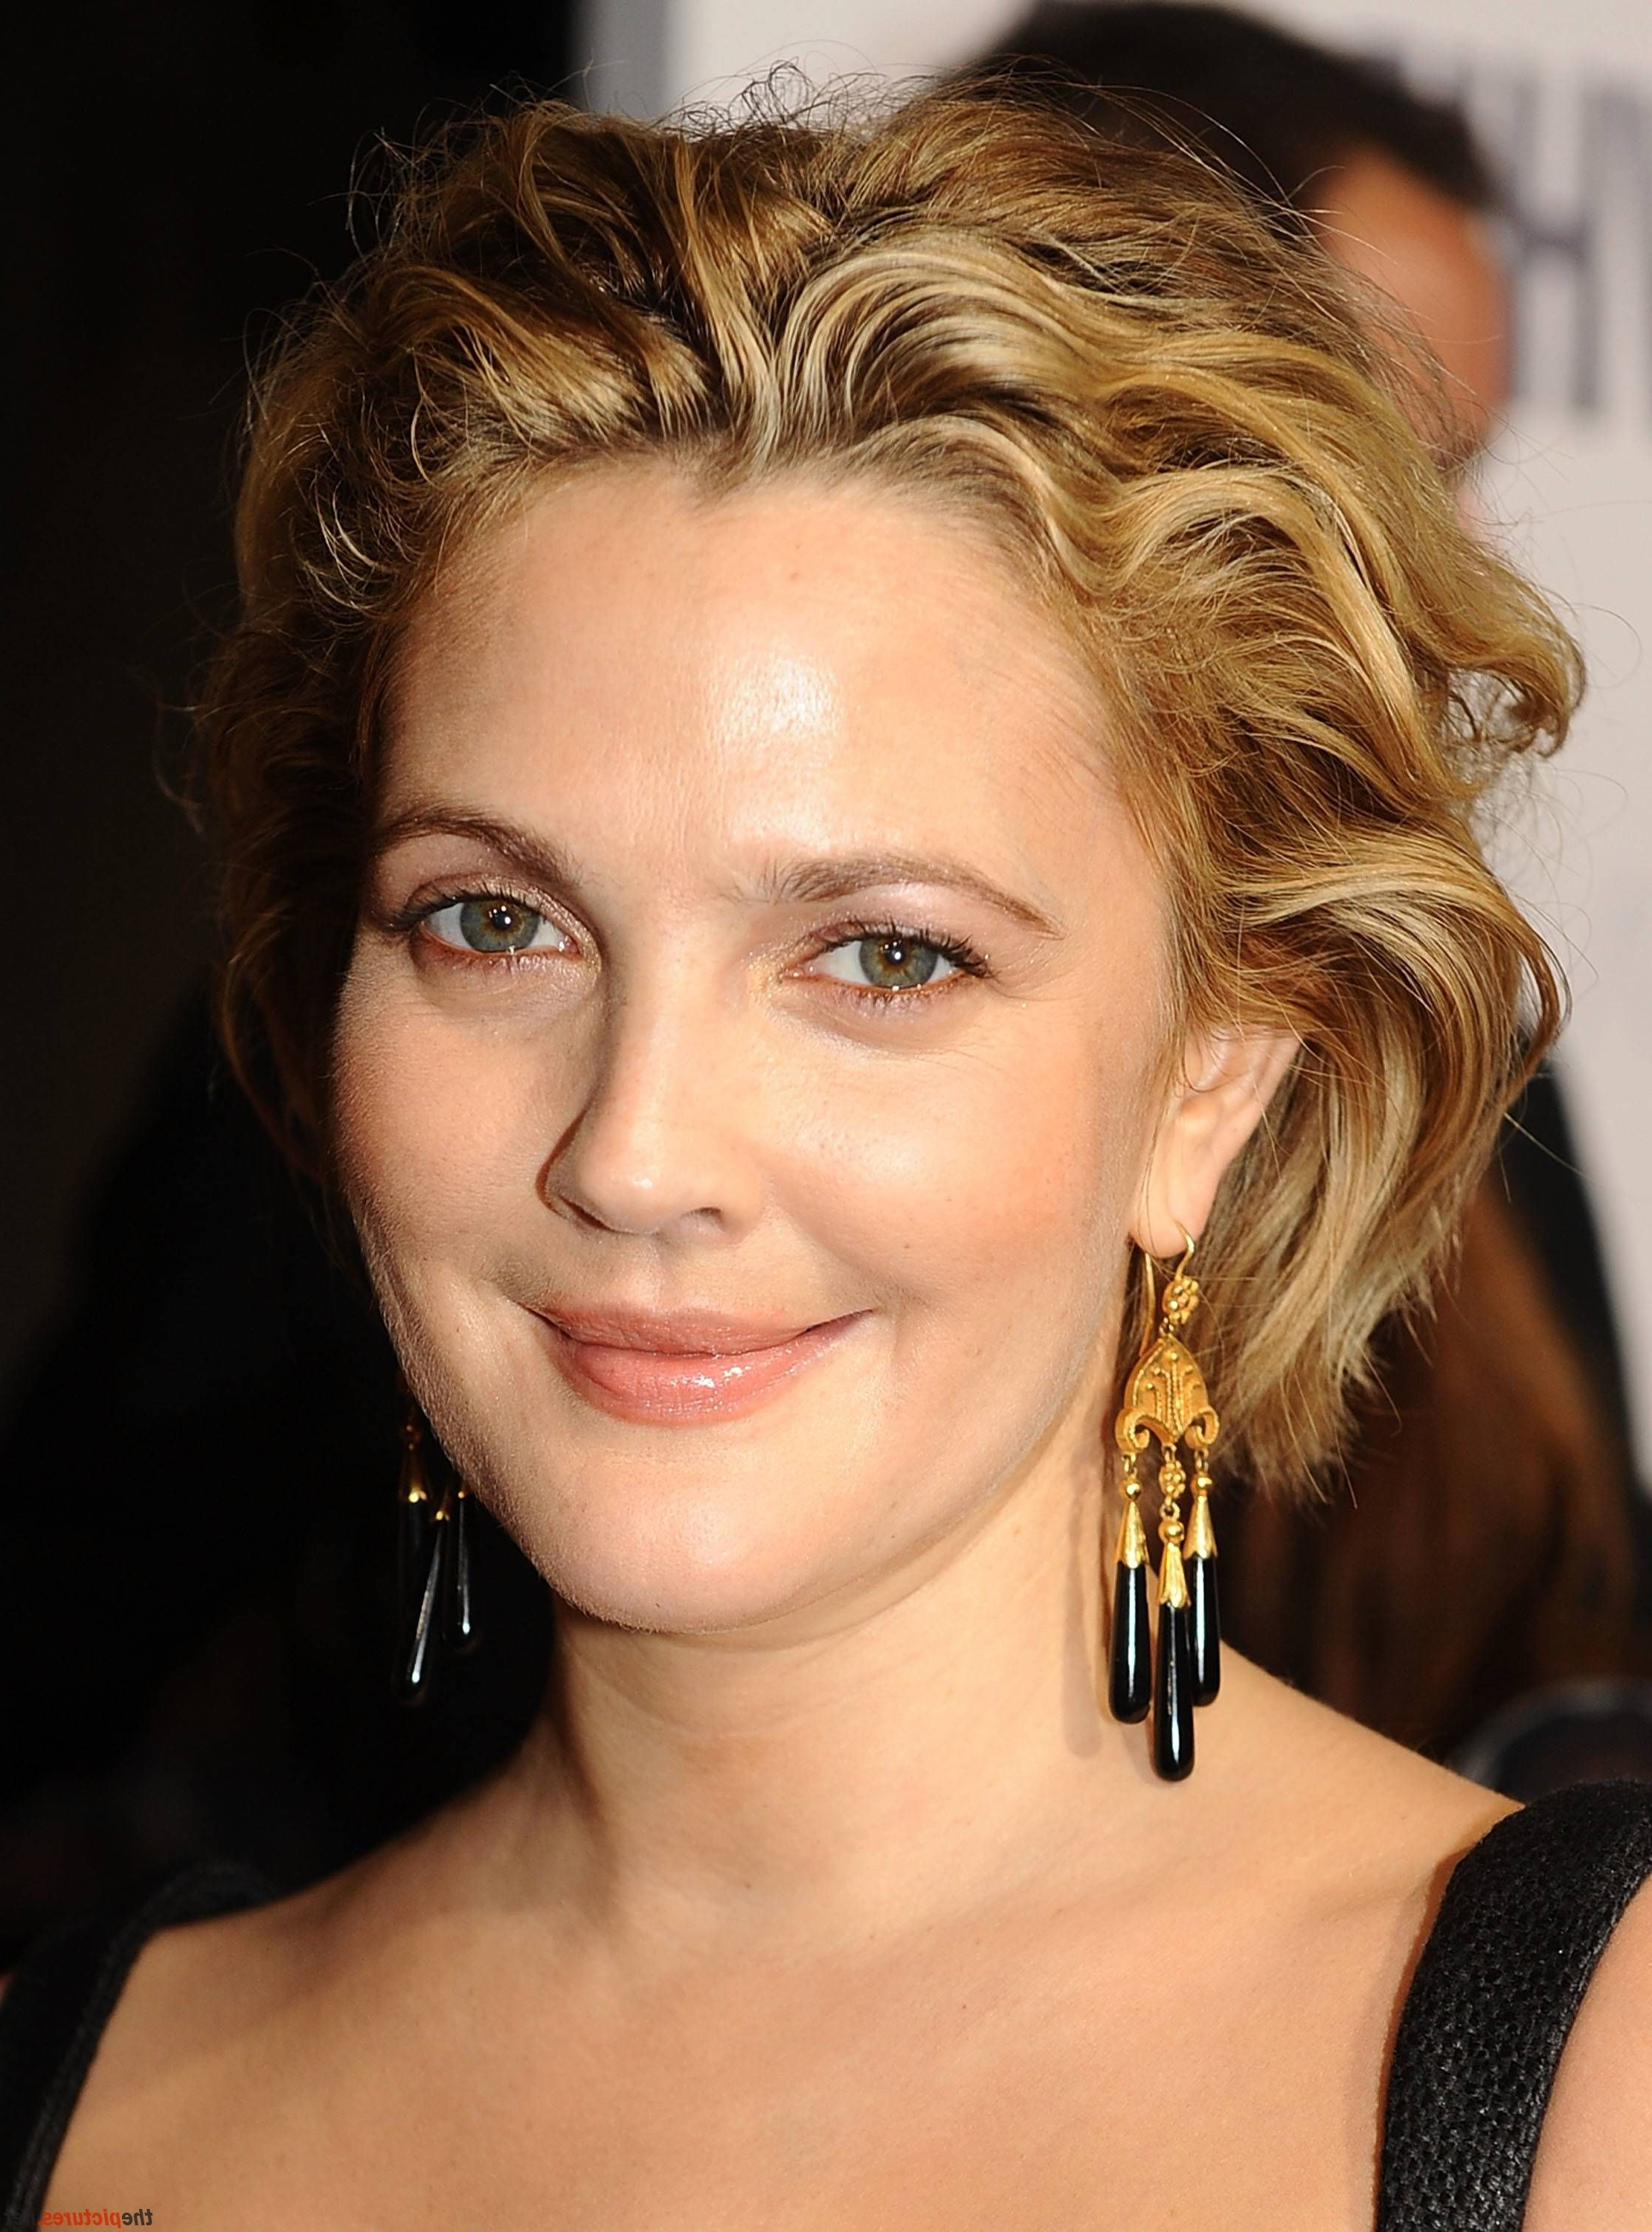 Short Prom Hairstyles: 24 Gorgeous Styles   Pinterest   Short Hair In Drew Barrymore Short Haircuts (View 24 of 25)